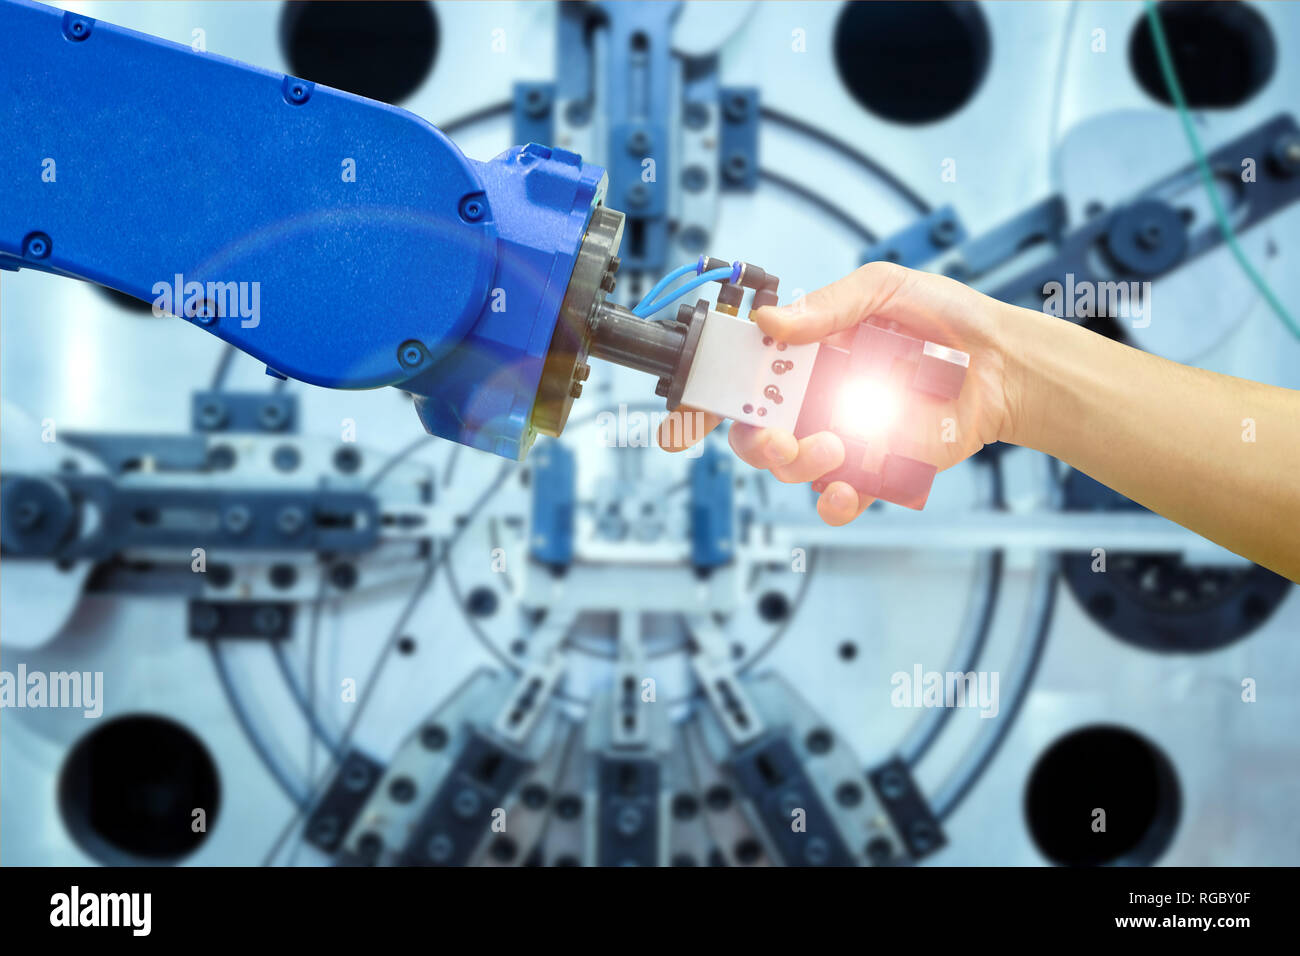 Industrial robot handshake with human on relationship for join to working on industrial manufacturing in concept - Stock Image